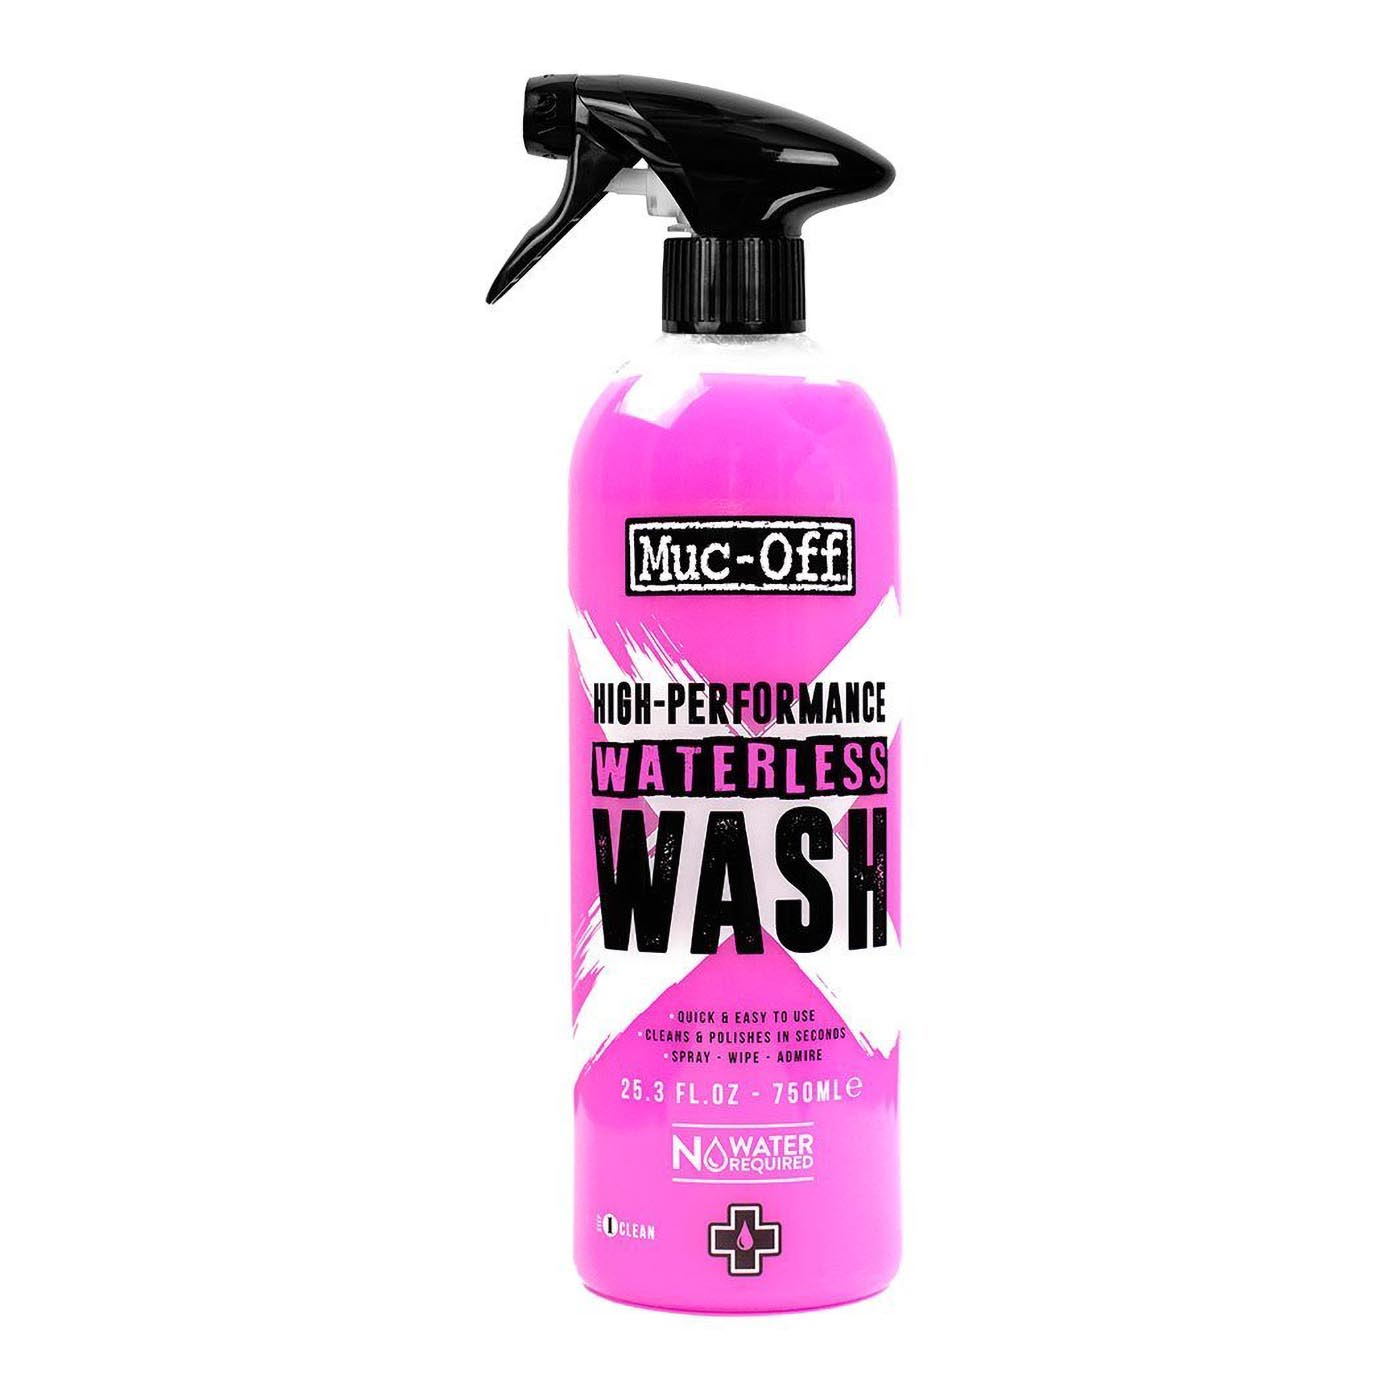 Muc-Off 750ML Waterless Wash on white background